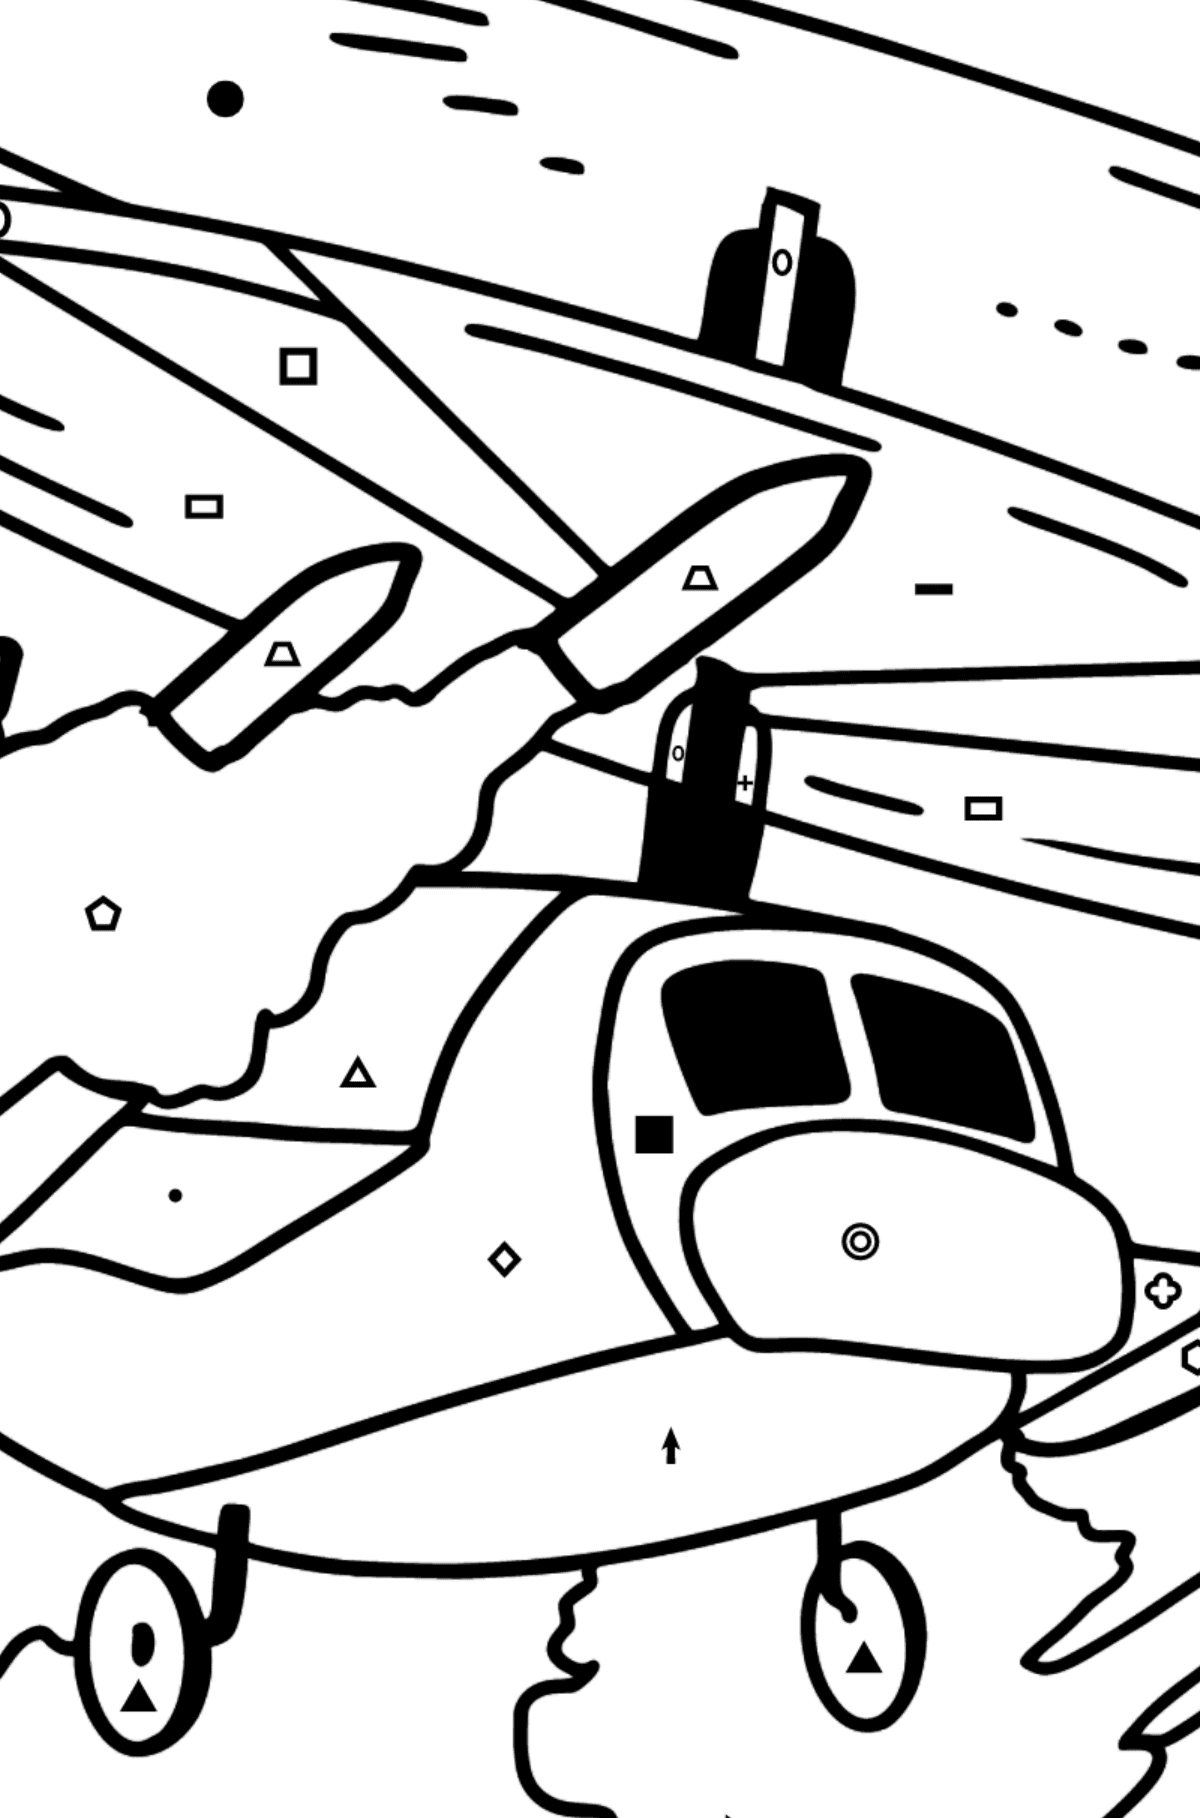 Coloring Page - A Military Helicopter - Coloring by Symbols and Geometric Shapes for Kids